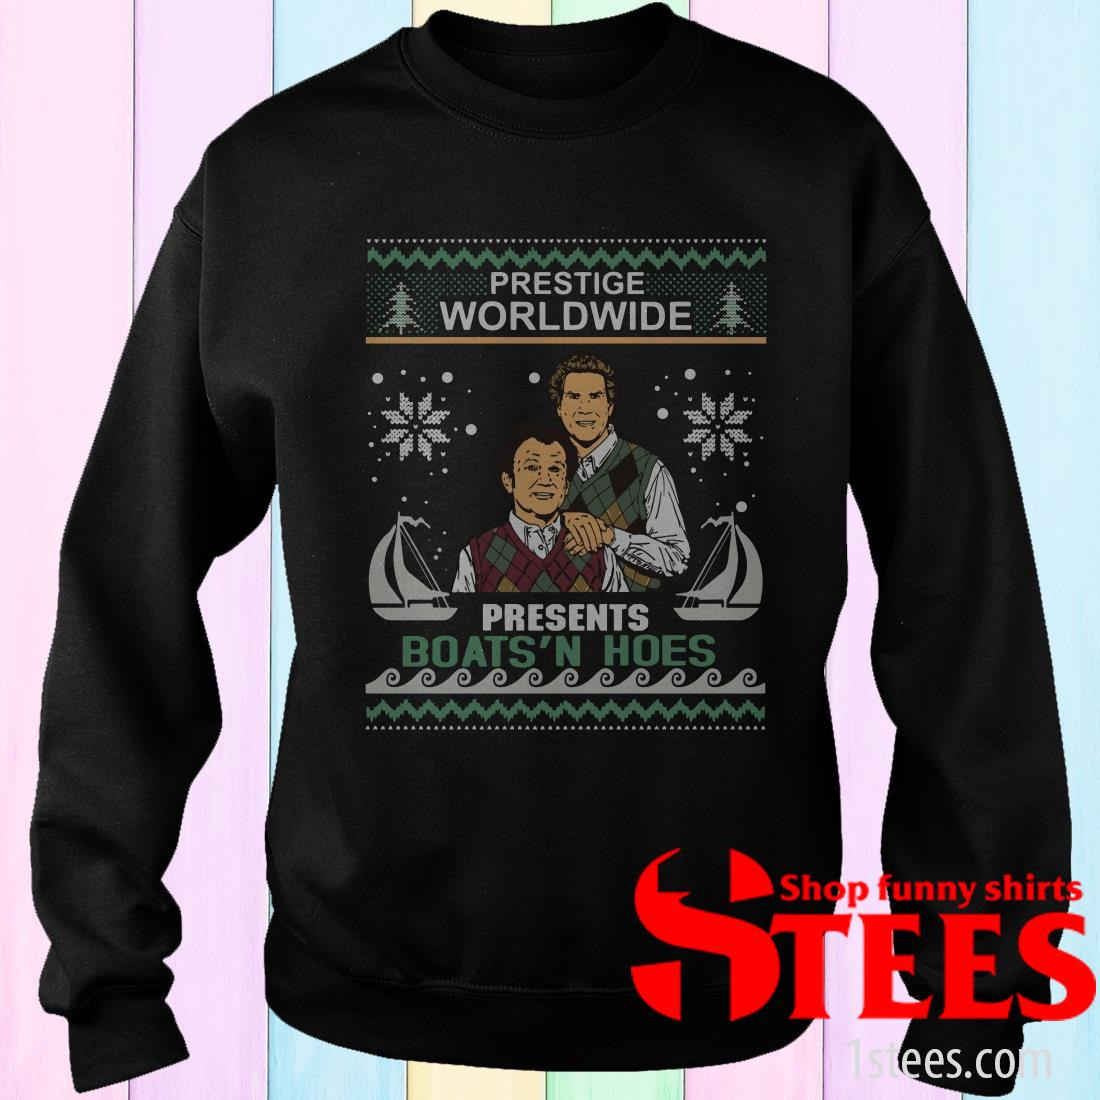 Step Brothers Prestige Worldwide Presents Boats 'n Hoes Ugly Christmas Sweatshirt